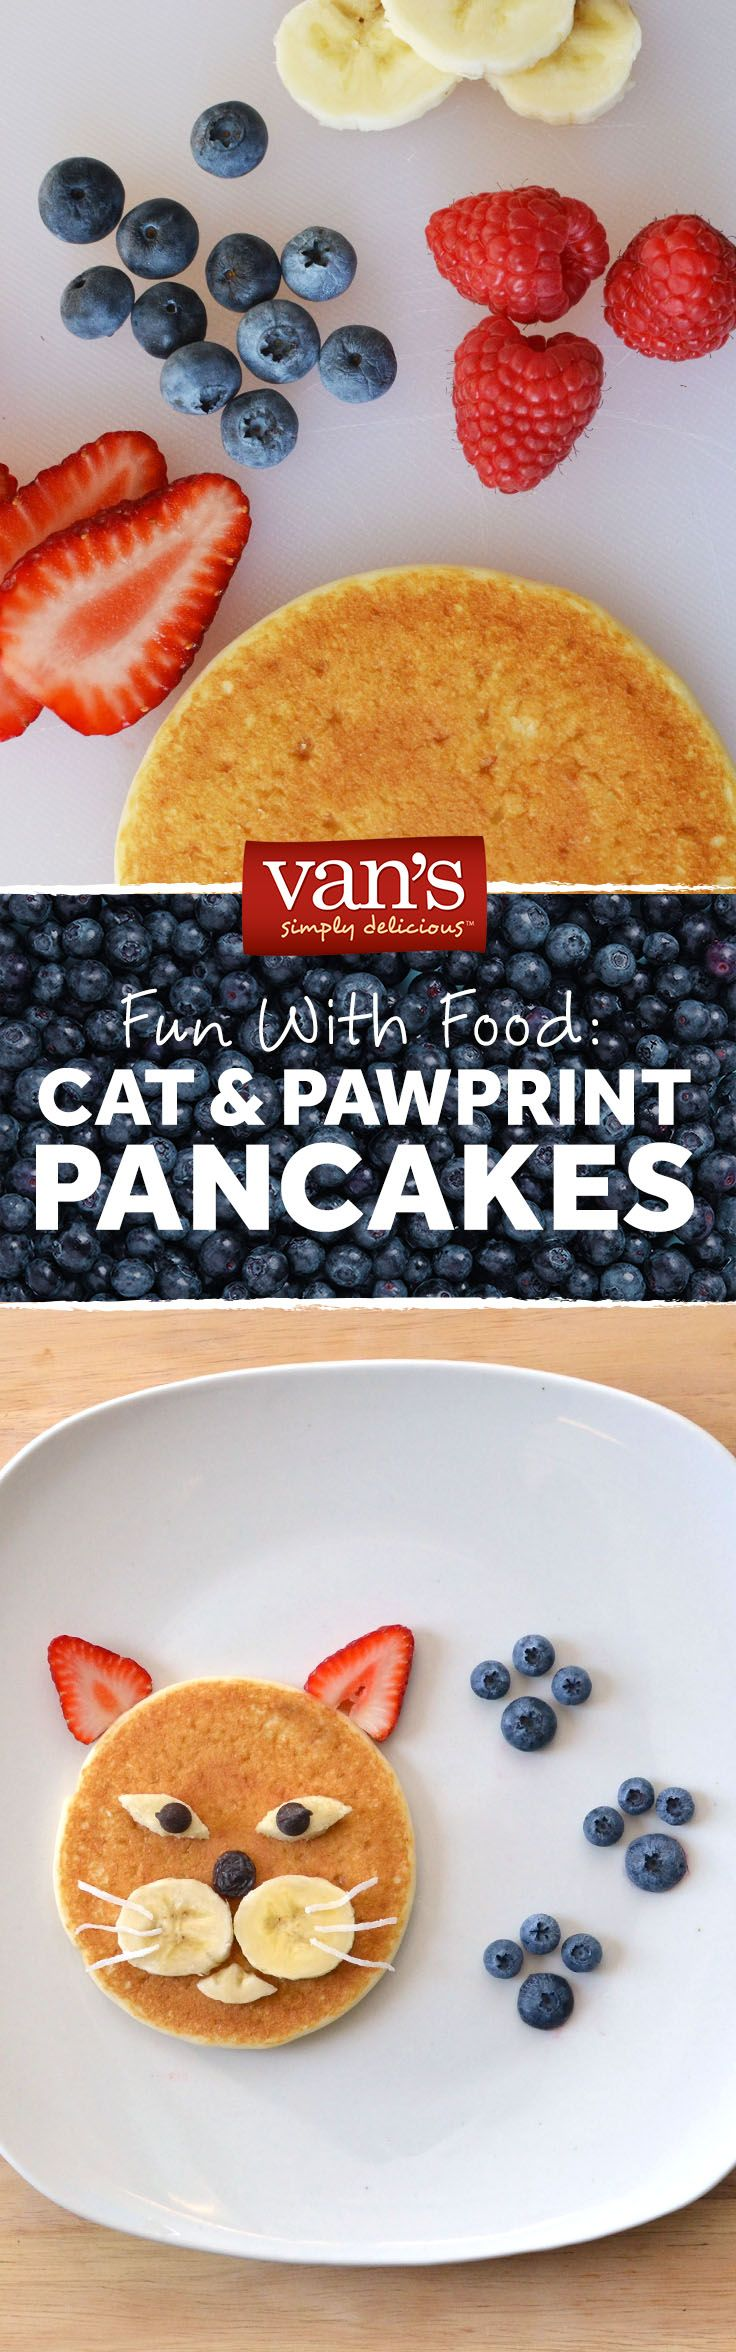 Because pancakes are the cat's meow! Make this fun